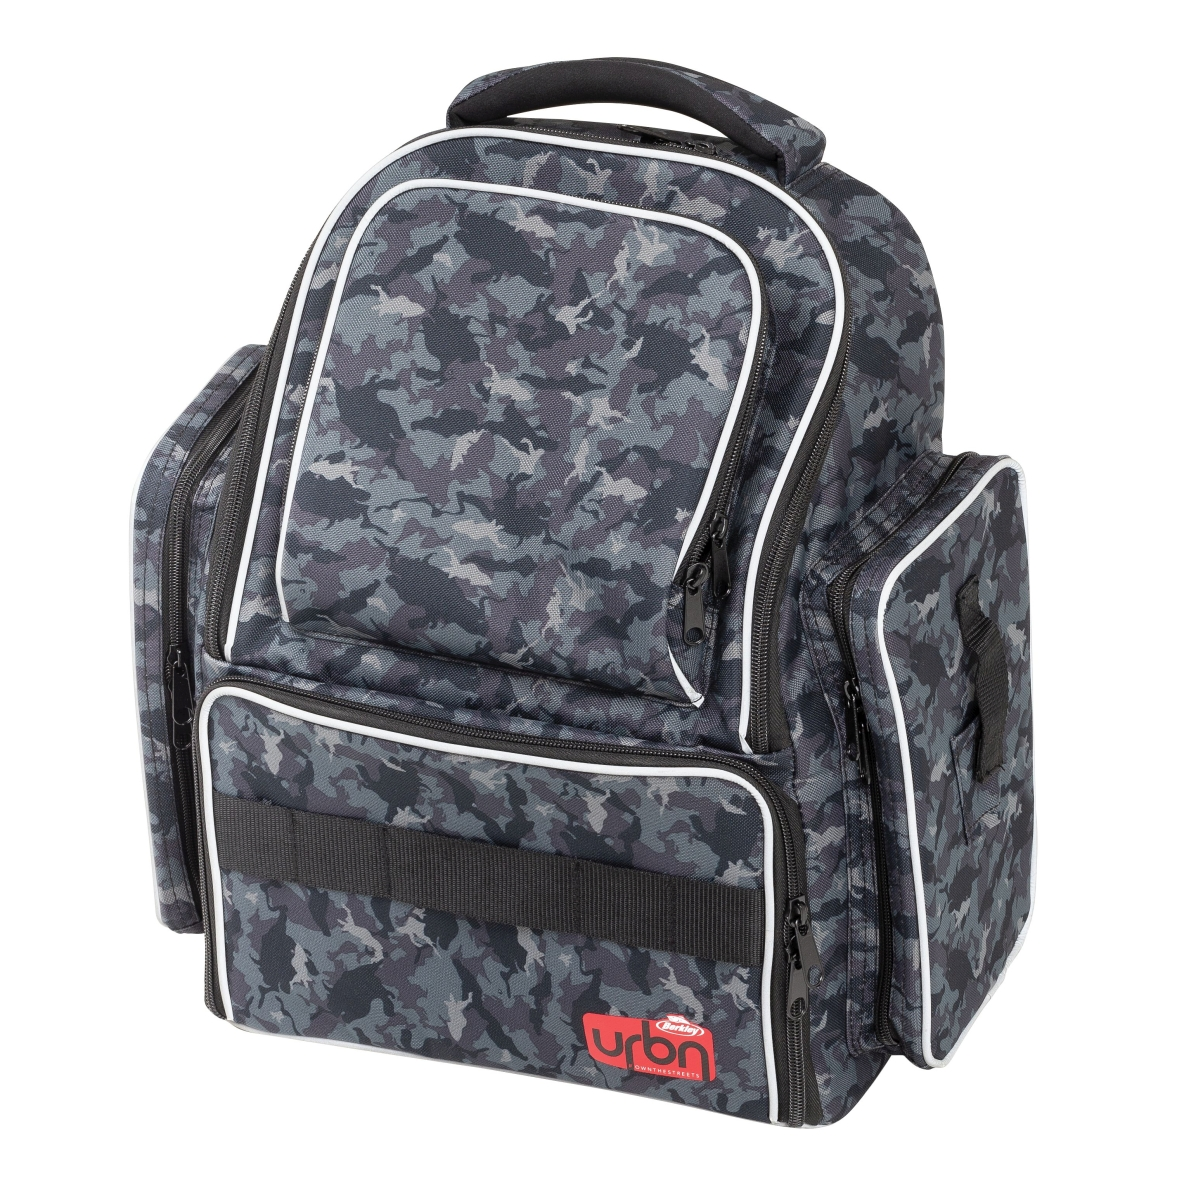 BERKLEY Batoh Berkley URBN Back Pack